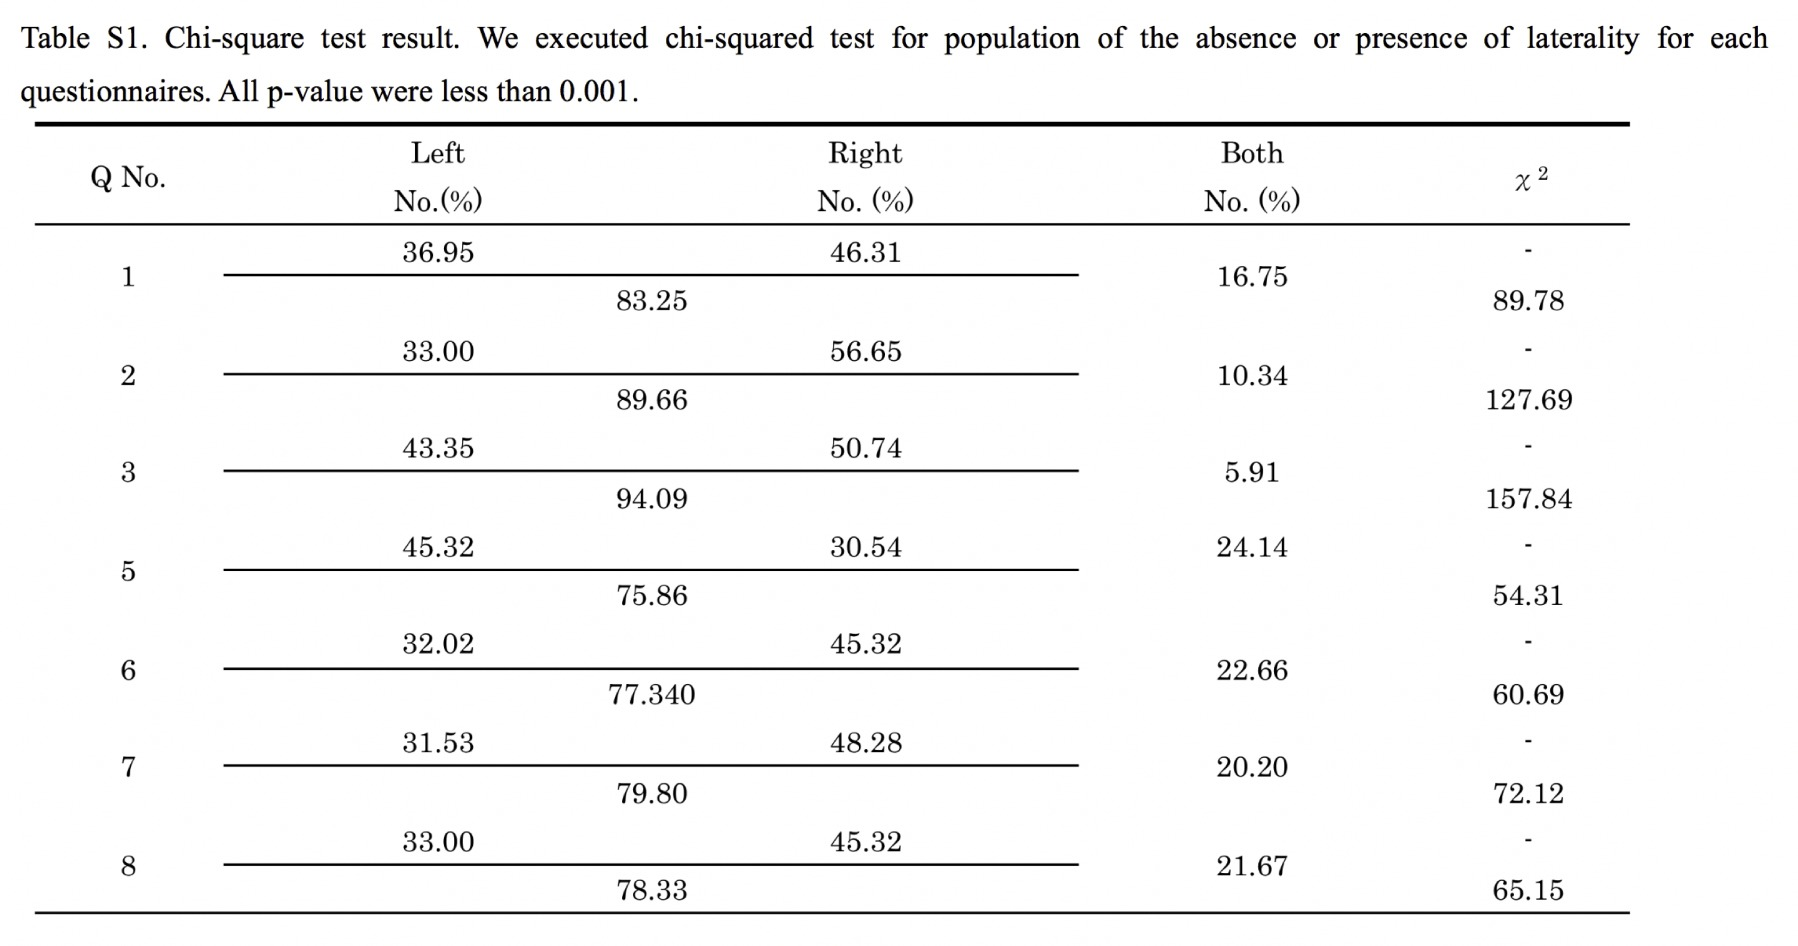 Adult attachment style and lateral preferences in physical